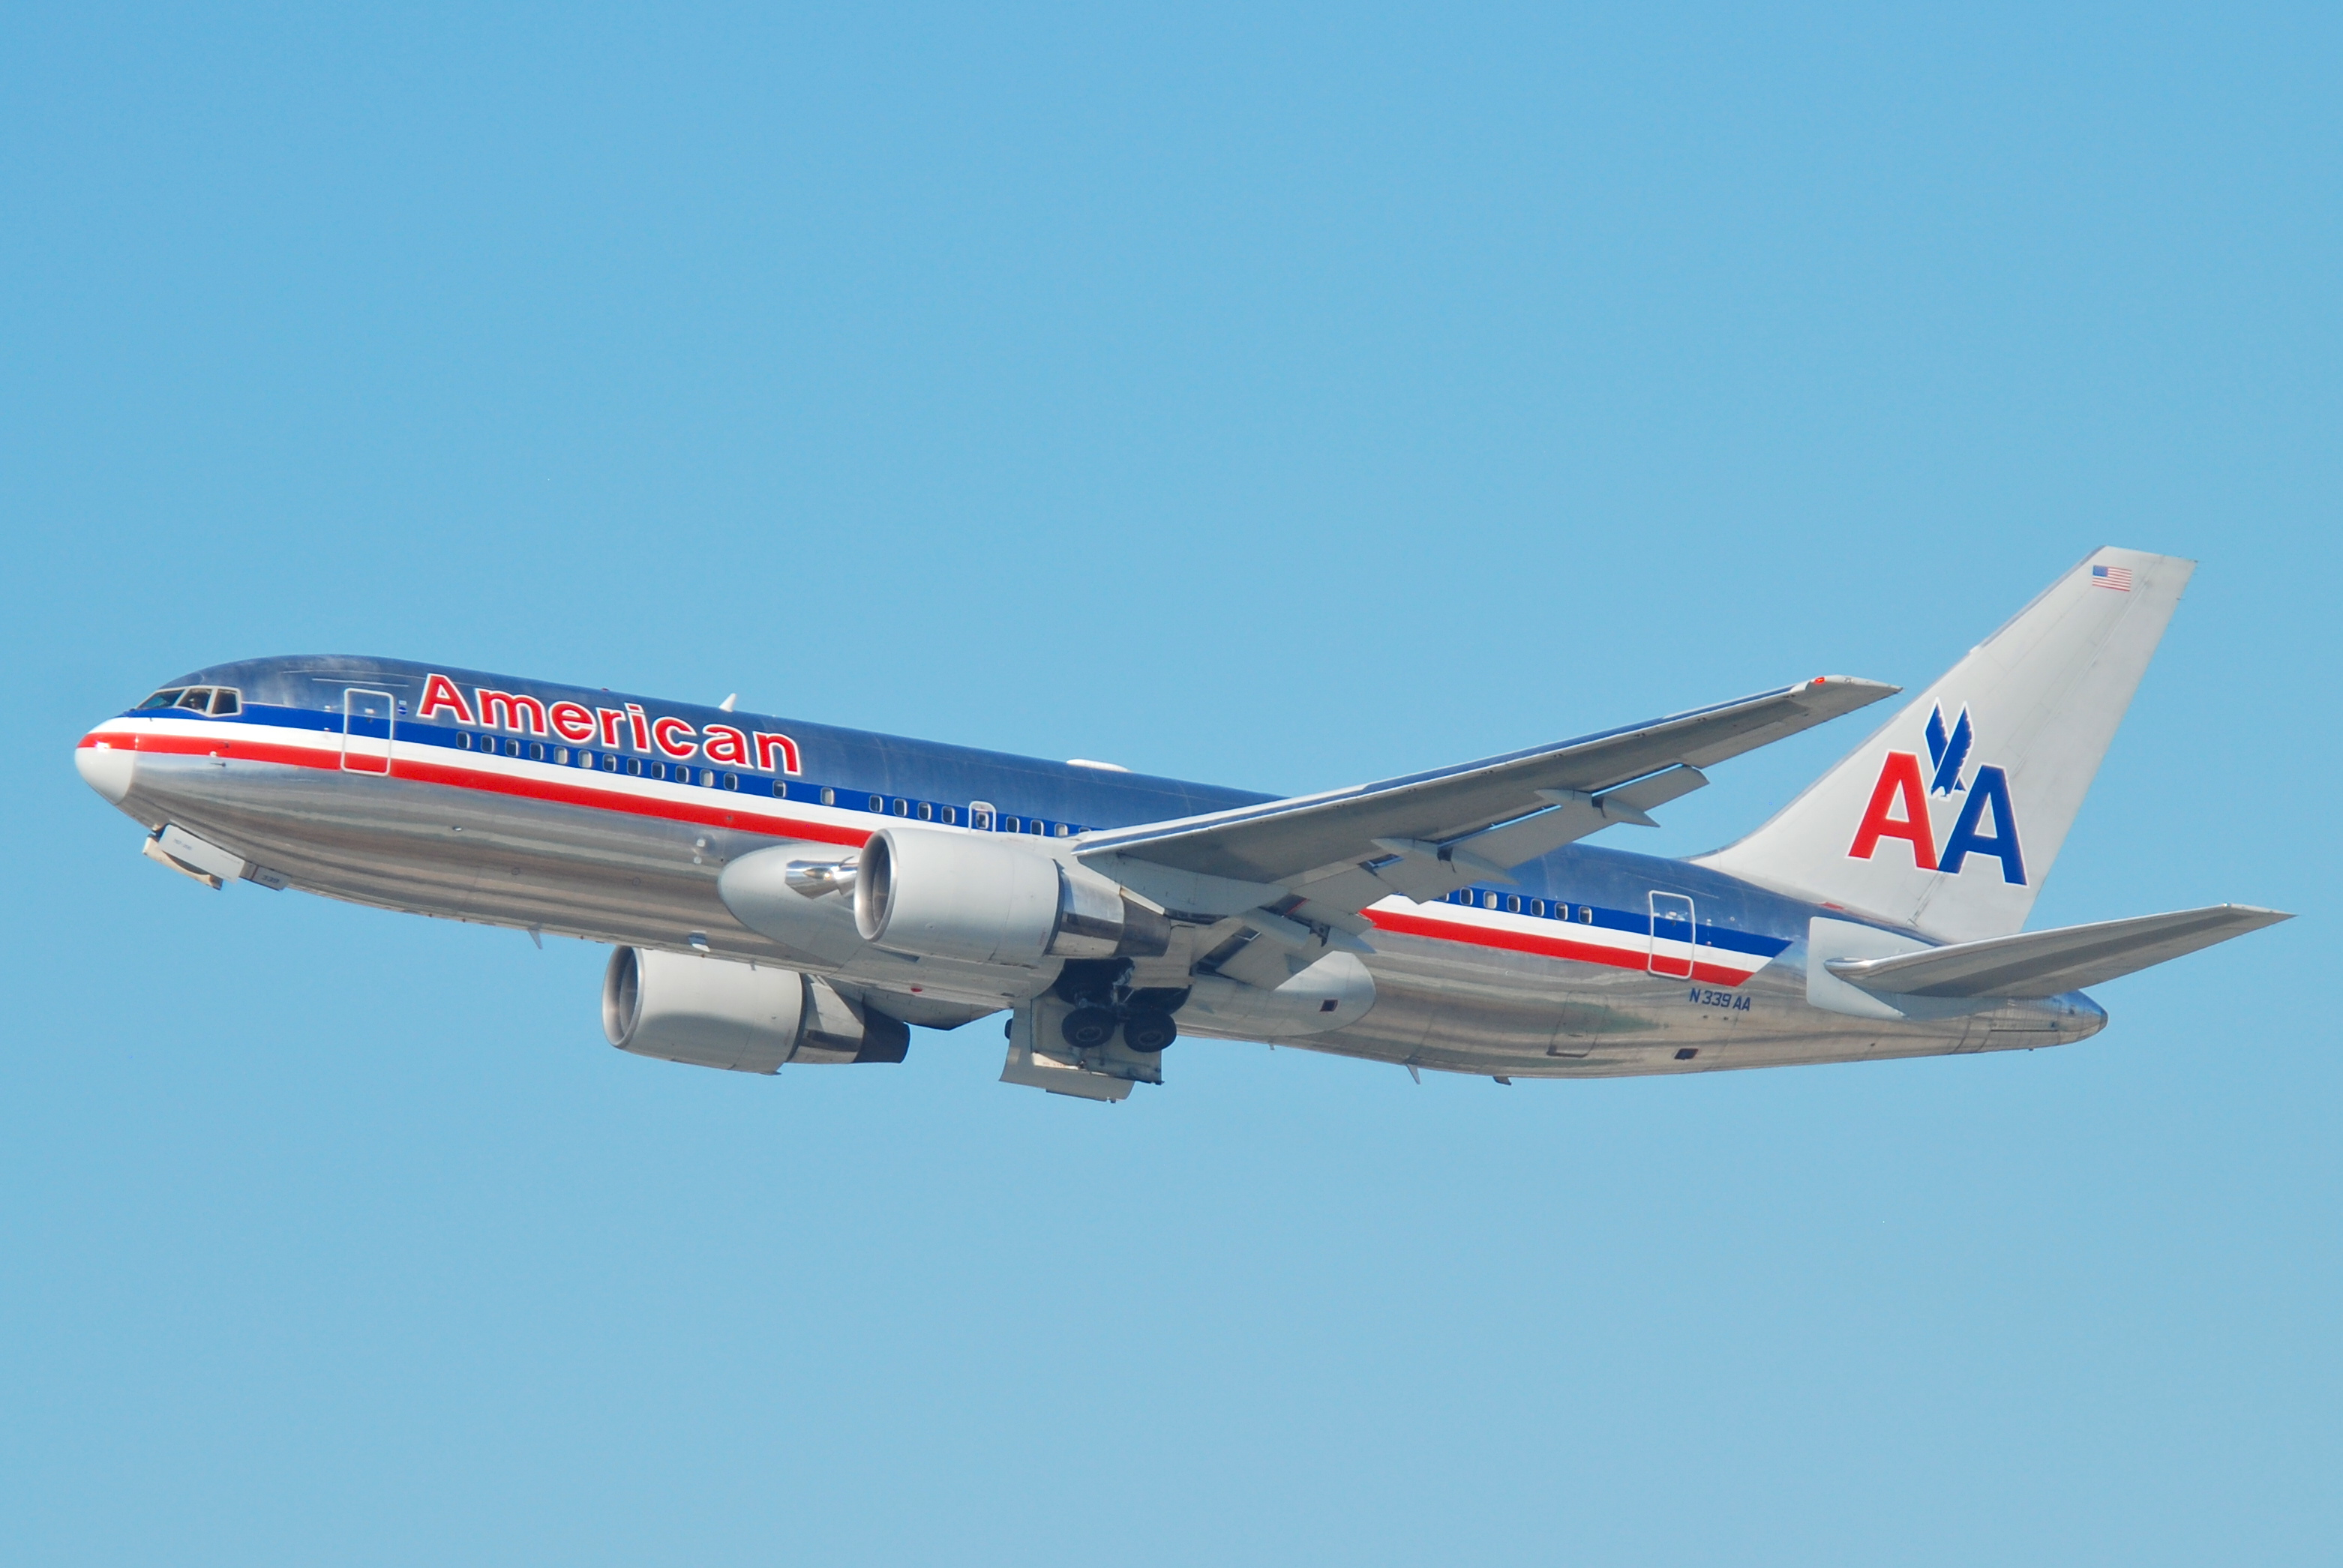 File:American Airlines Boeing 767-200; N339AA@LAX;11.10 ...